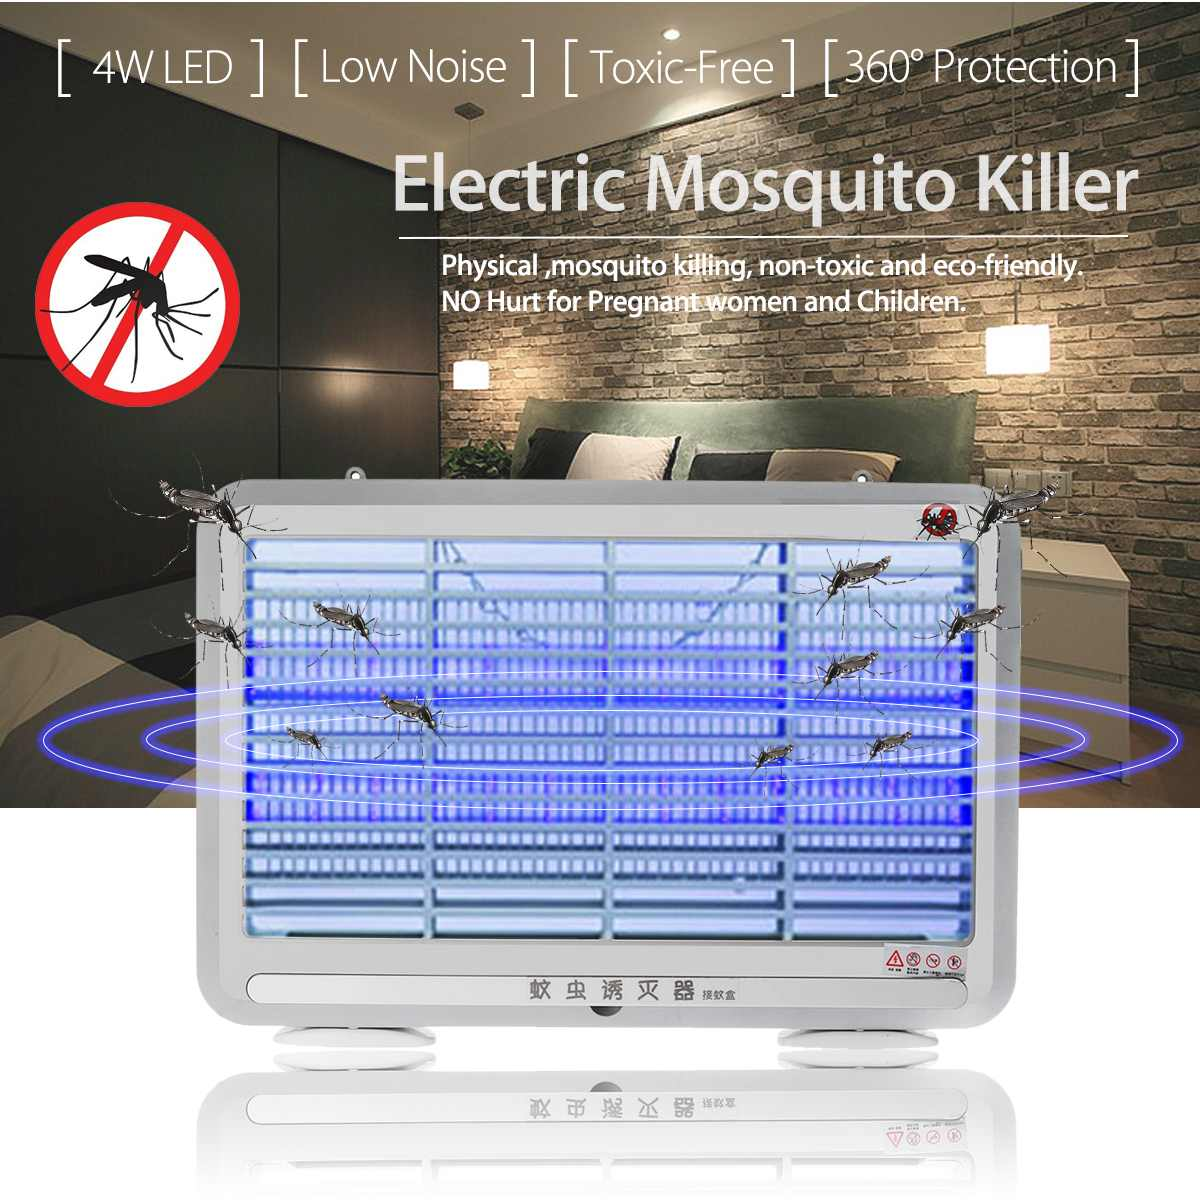 Smuxi 220V LED Mosquito Killer Lamp LED Light Insect Killer 4W Energy Saving Anti Mosquito Lamp Electric Shock Repellent